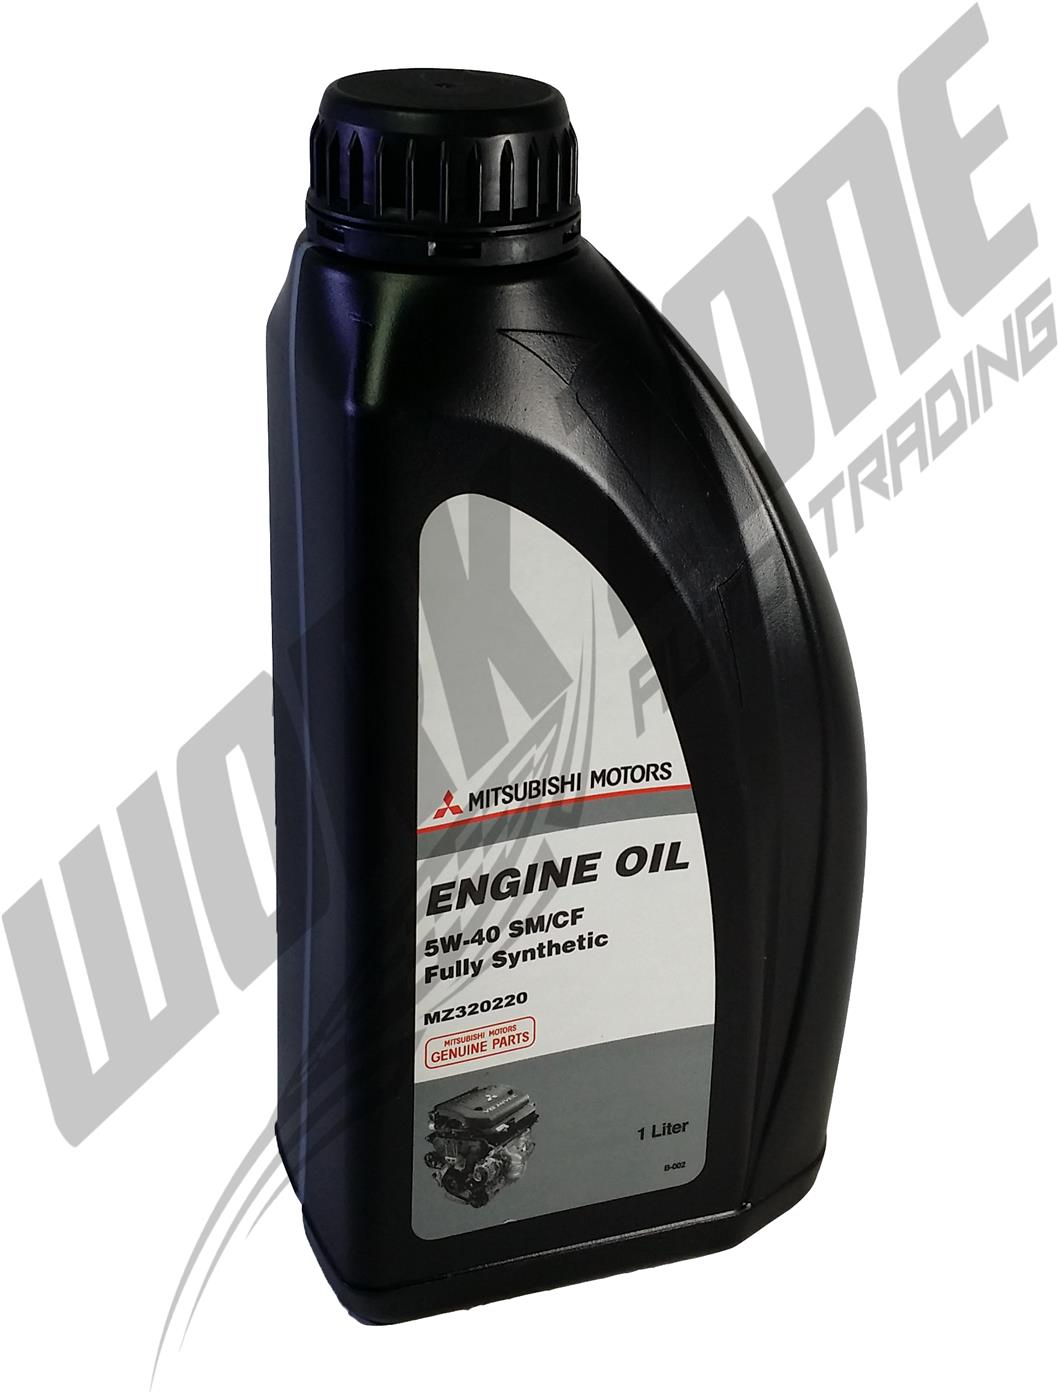 Mitsubishi motors original fully sy end 12 27 2016 6 57 pm for Synthetic motor oil sale